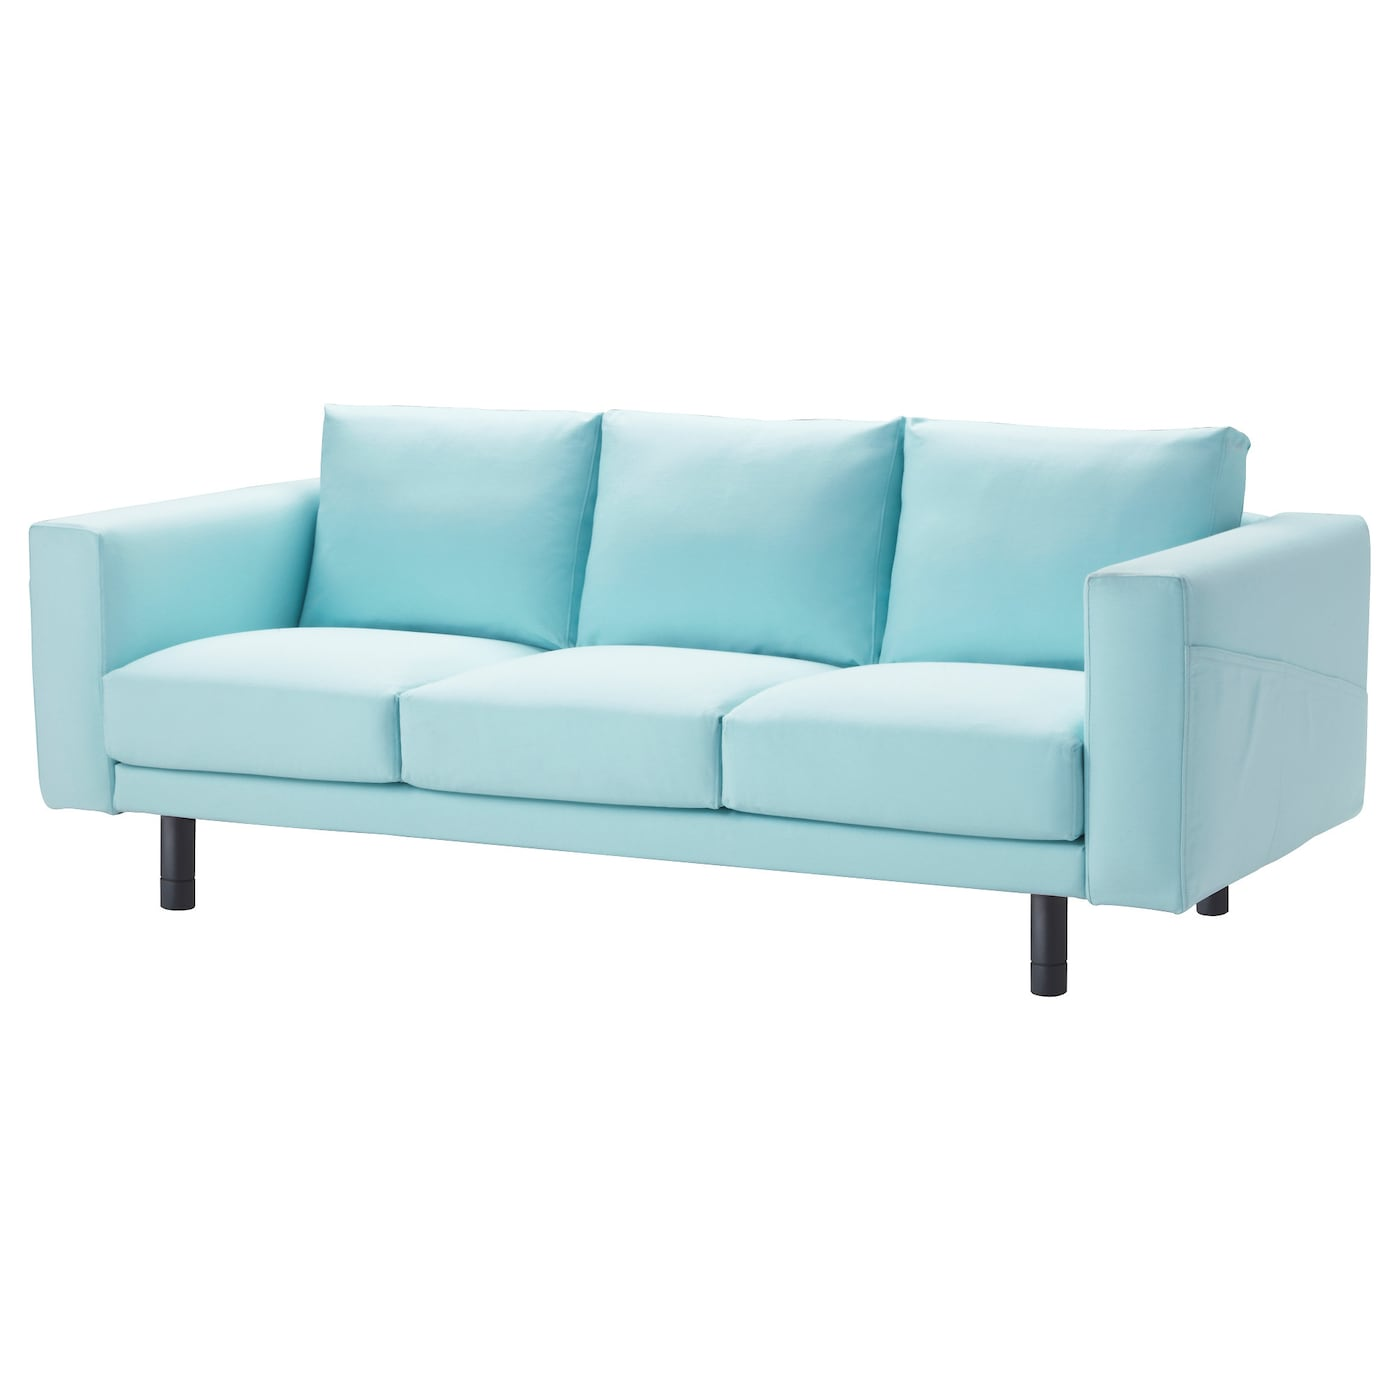 Norsborg three seat sofa gr sbo light blue grey ikea for Blue grey couch